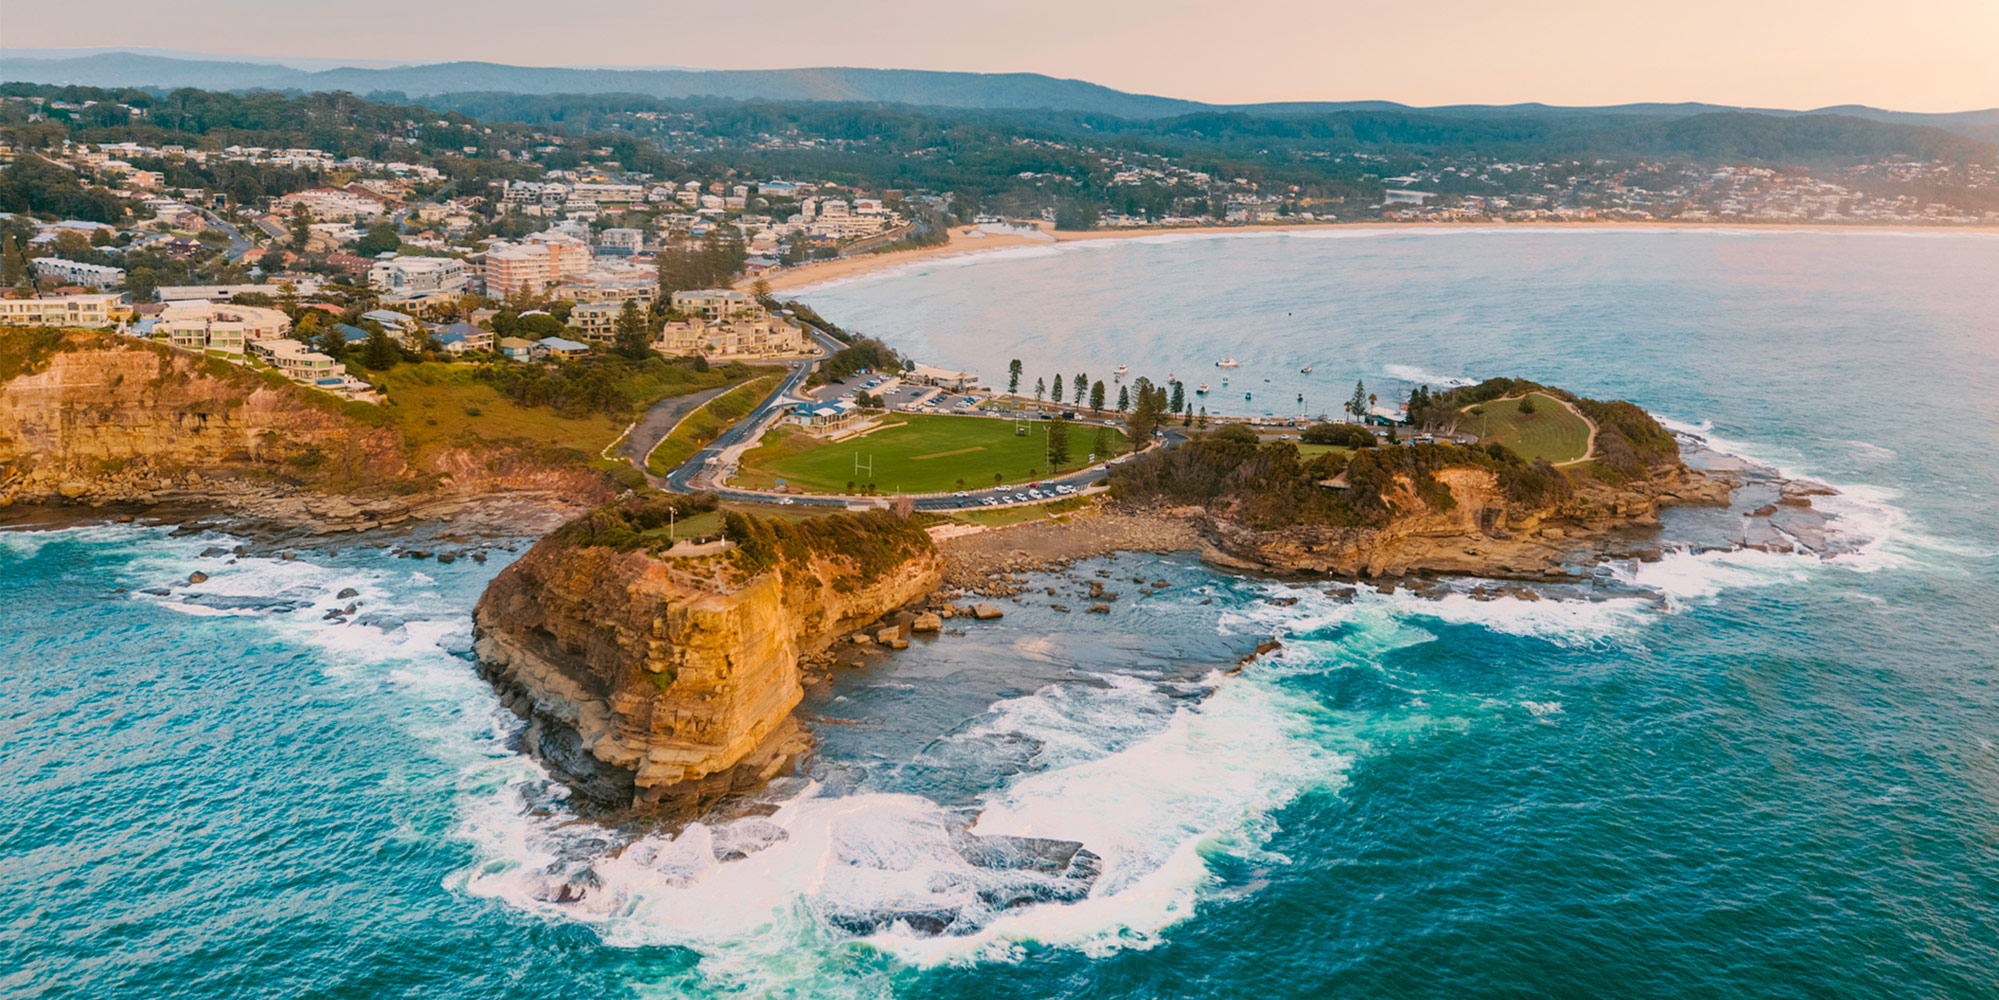 View over Terrigal showing coastline, Skillion, town and beaches